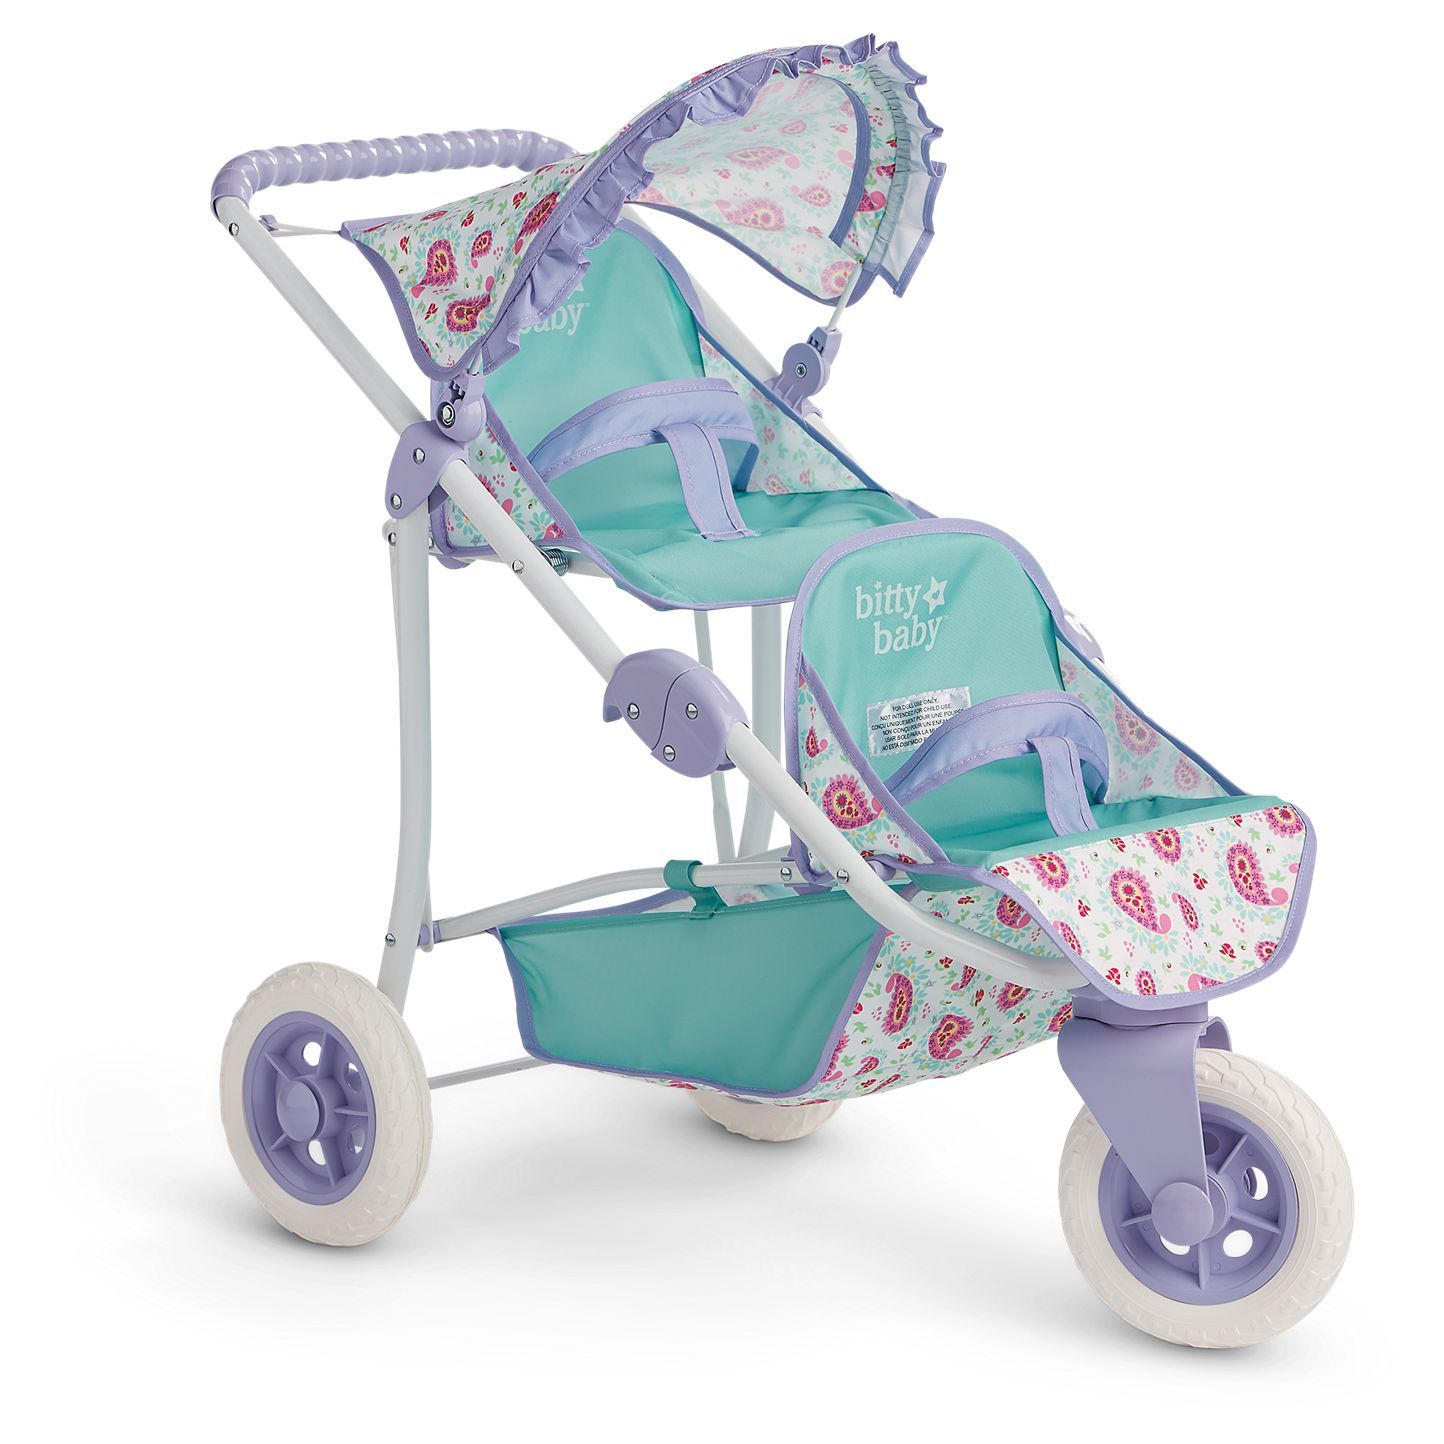 Bitty's Double Stroller Baby doll strollers, Bitty baby